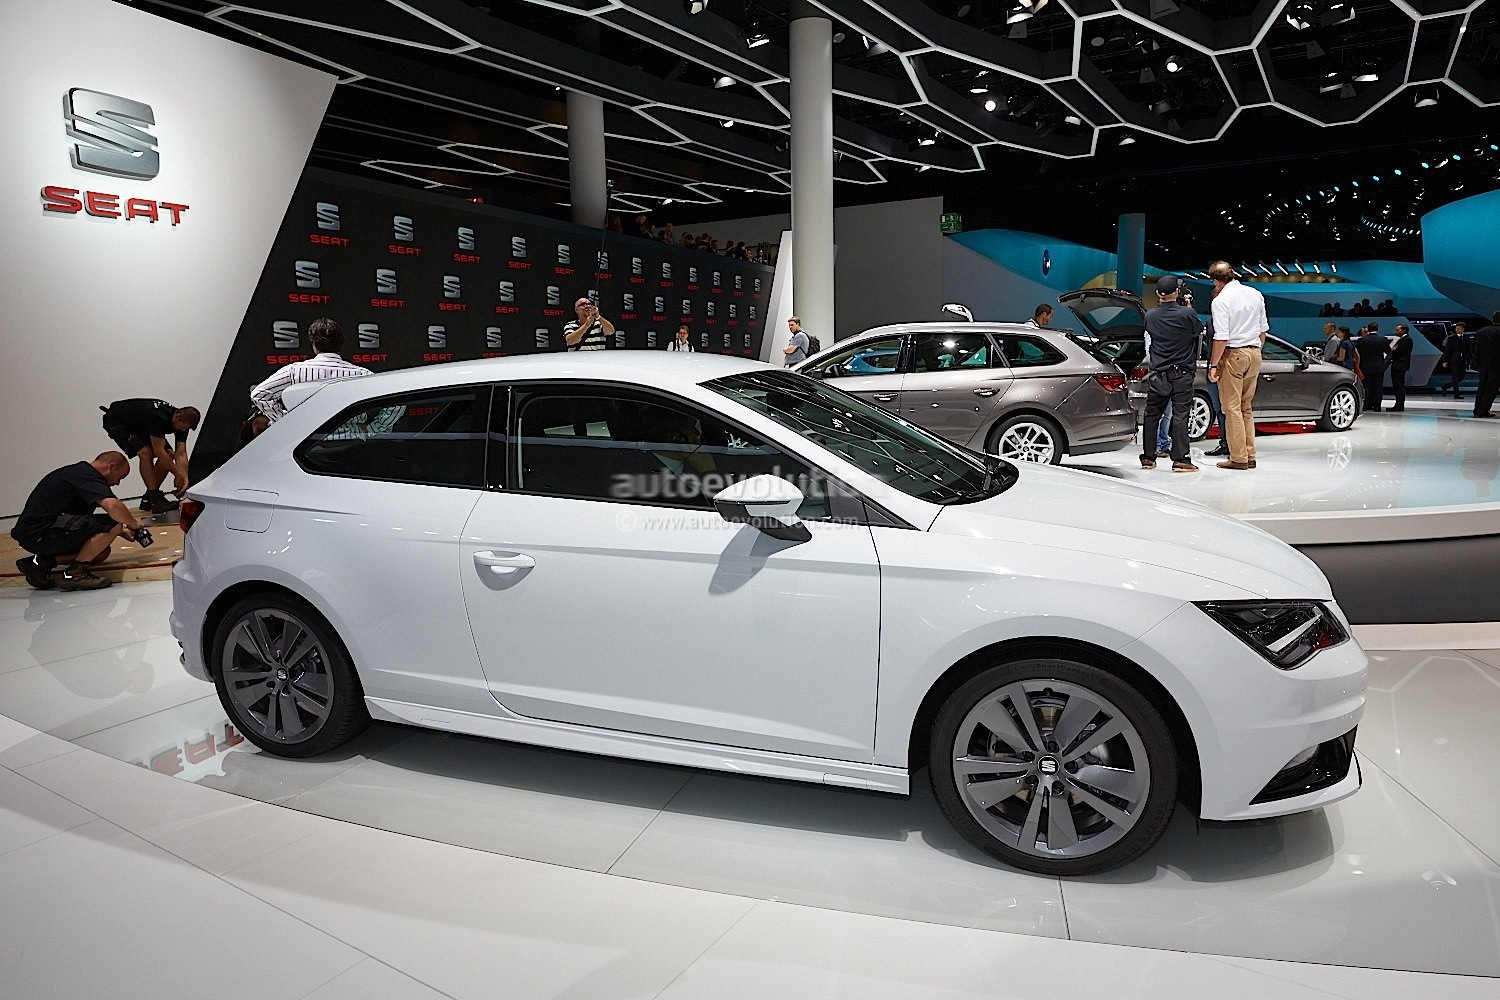 frankfurt 2013 seat leon sc fr 1 8 tsi live photos. Black Bedroom Furniture Sets. Home Design Ideas